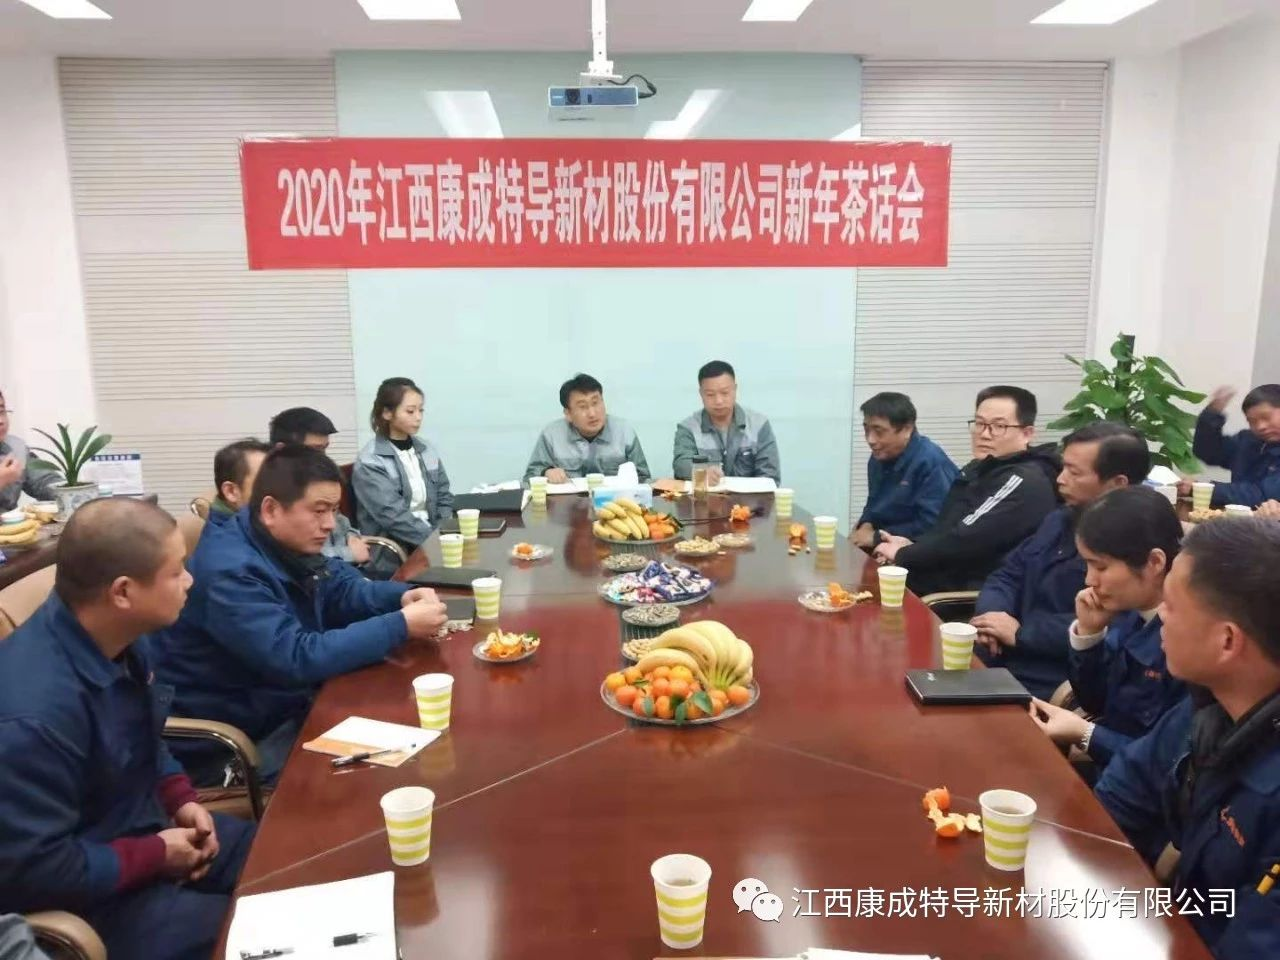 Jiangxi kangcheng special guide new material co., LTD. Held a New Year tea party